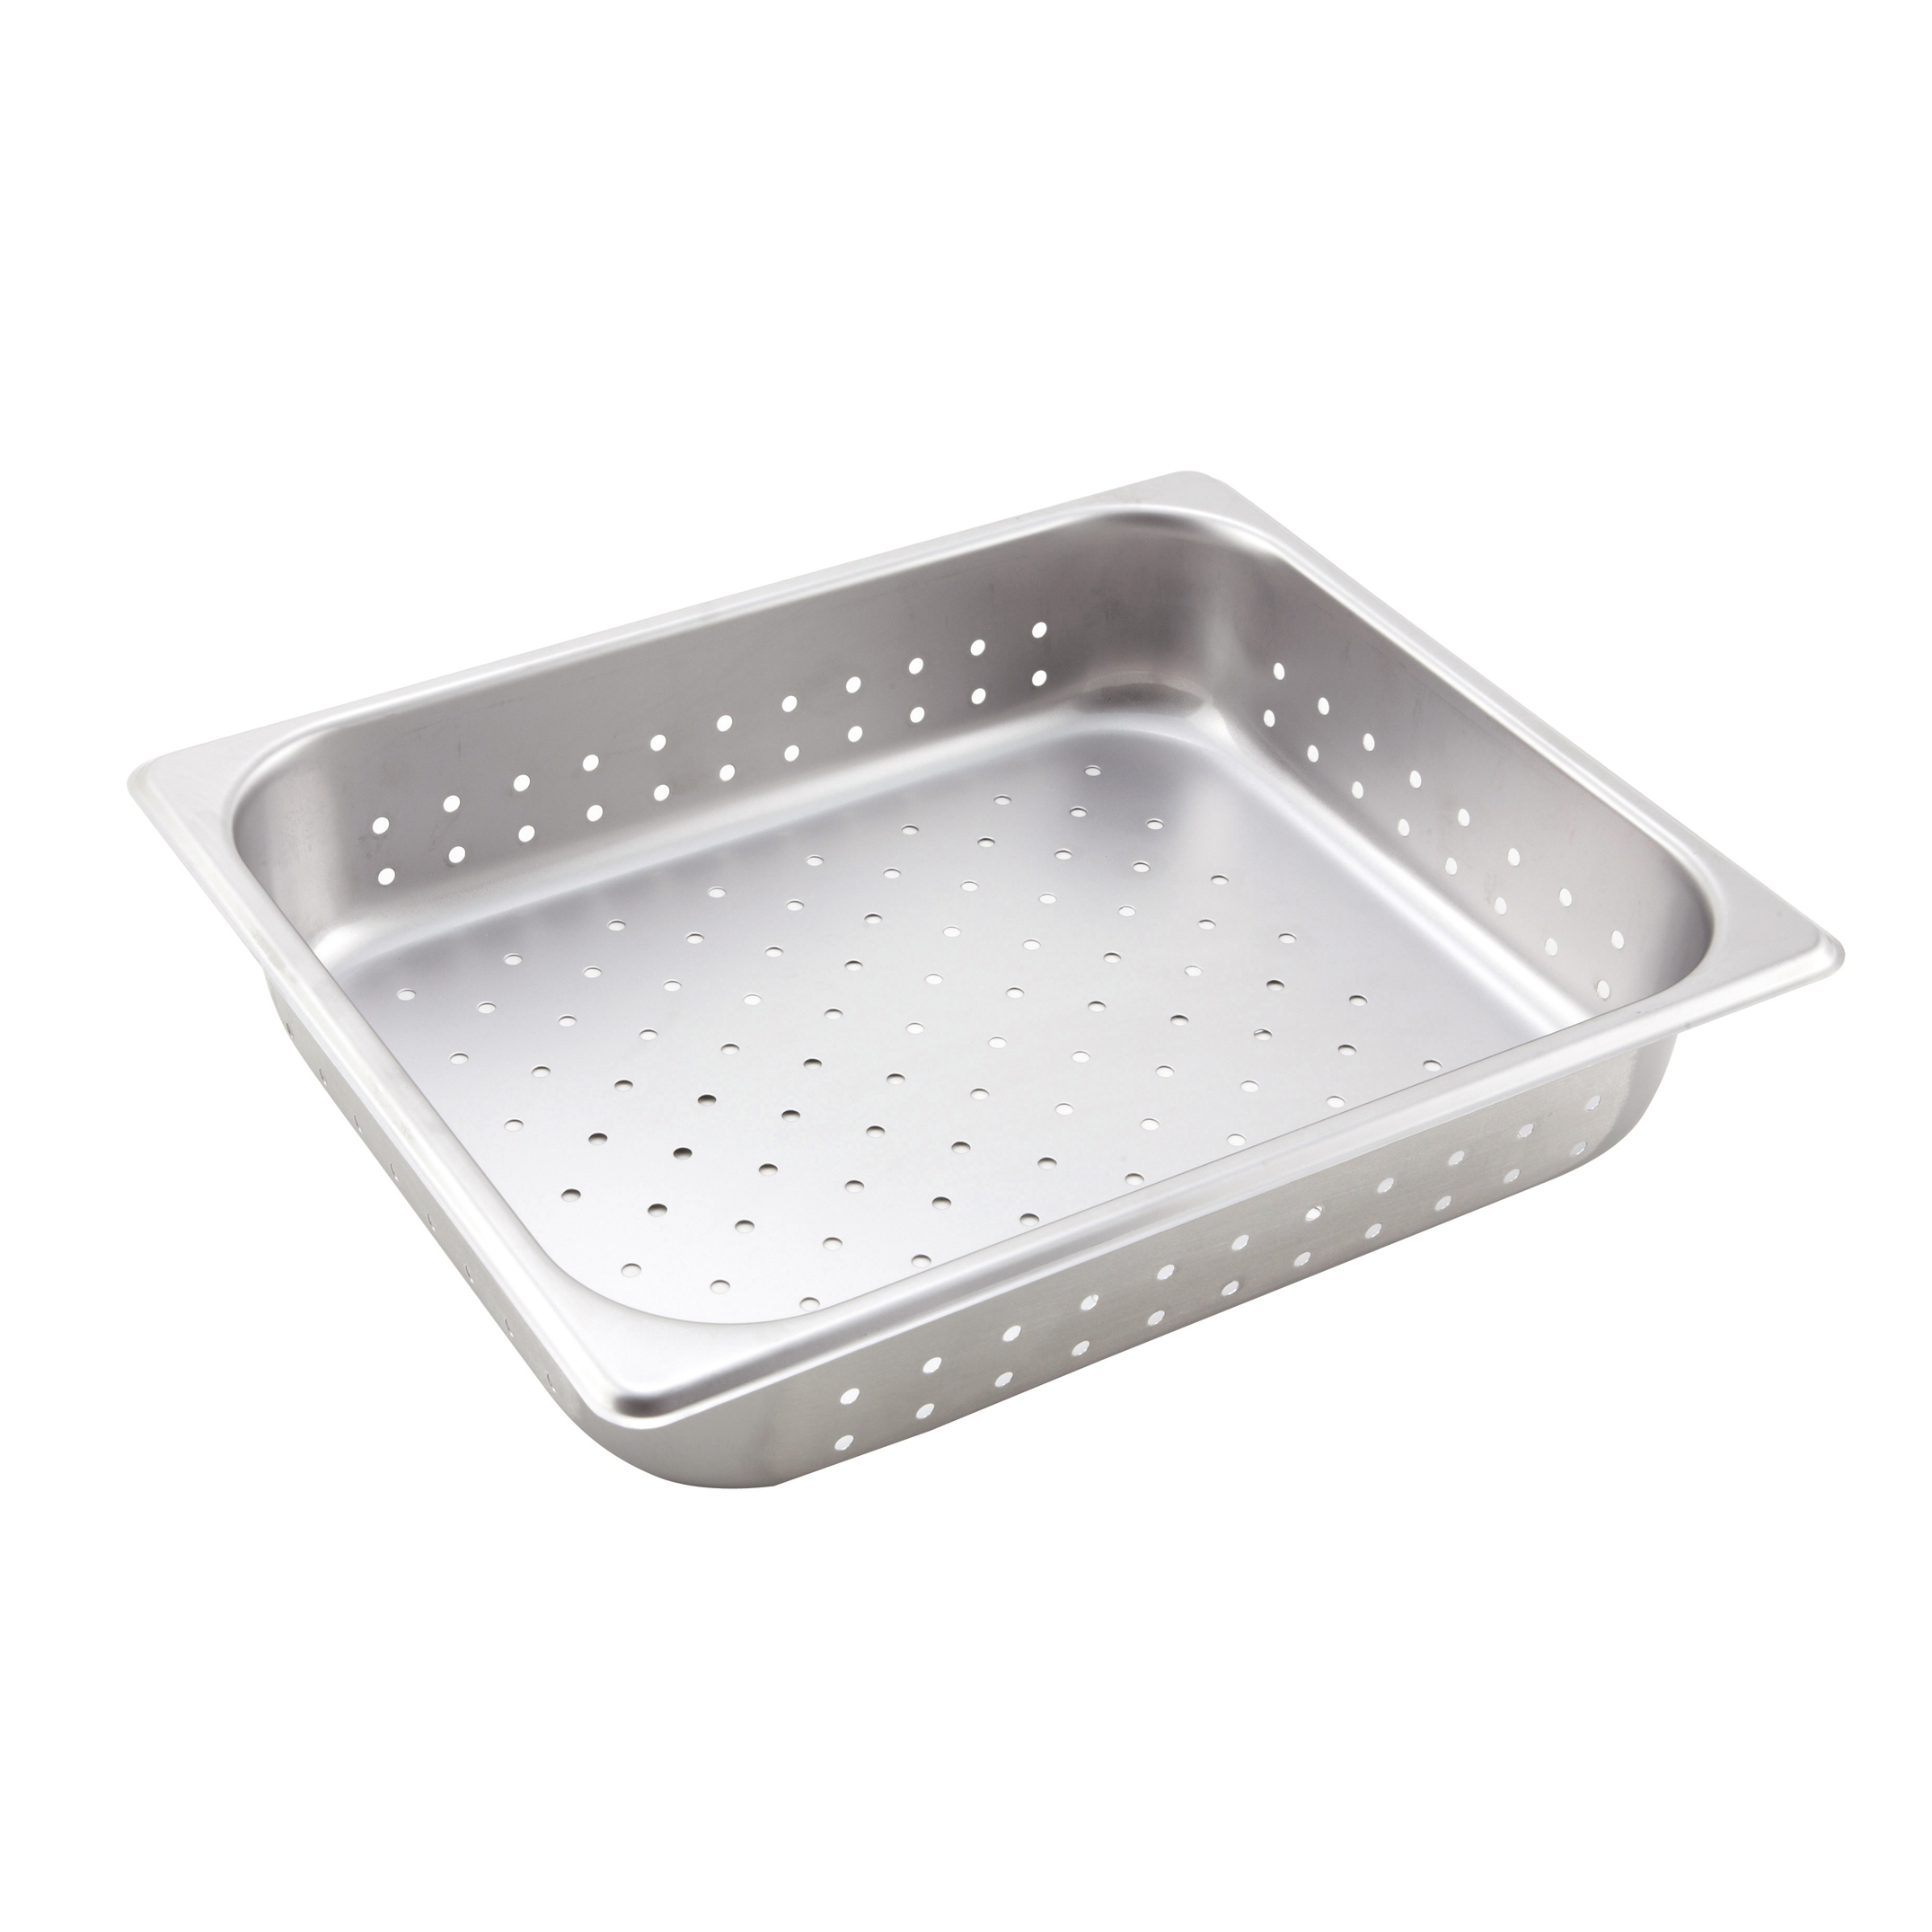 Winco SPJH-202PF steam table pan, stainless steel